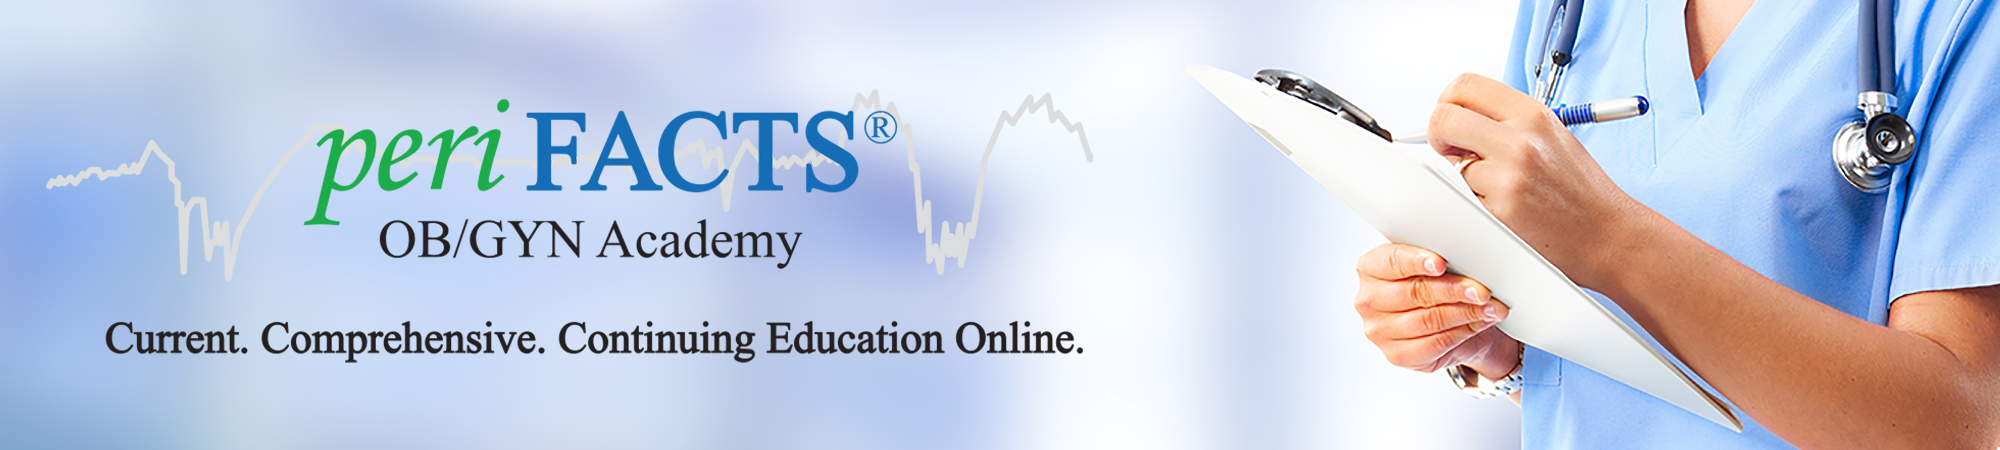 periFACTS OB/GYN Academy: Current. Comprehensive. Continuing Education Online.